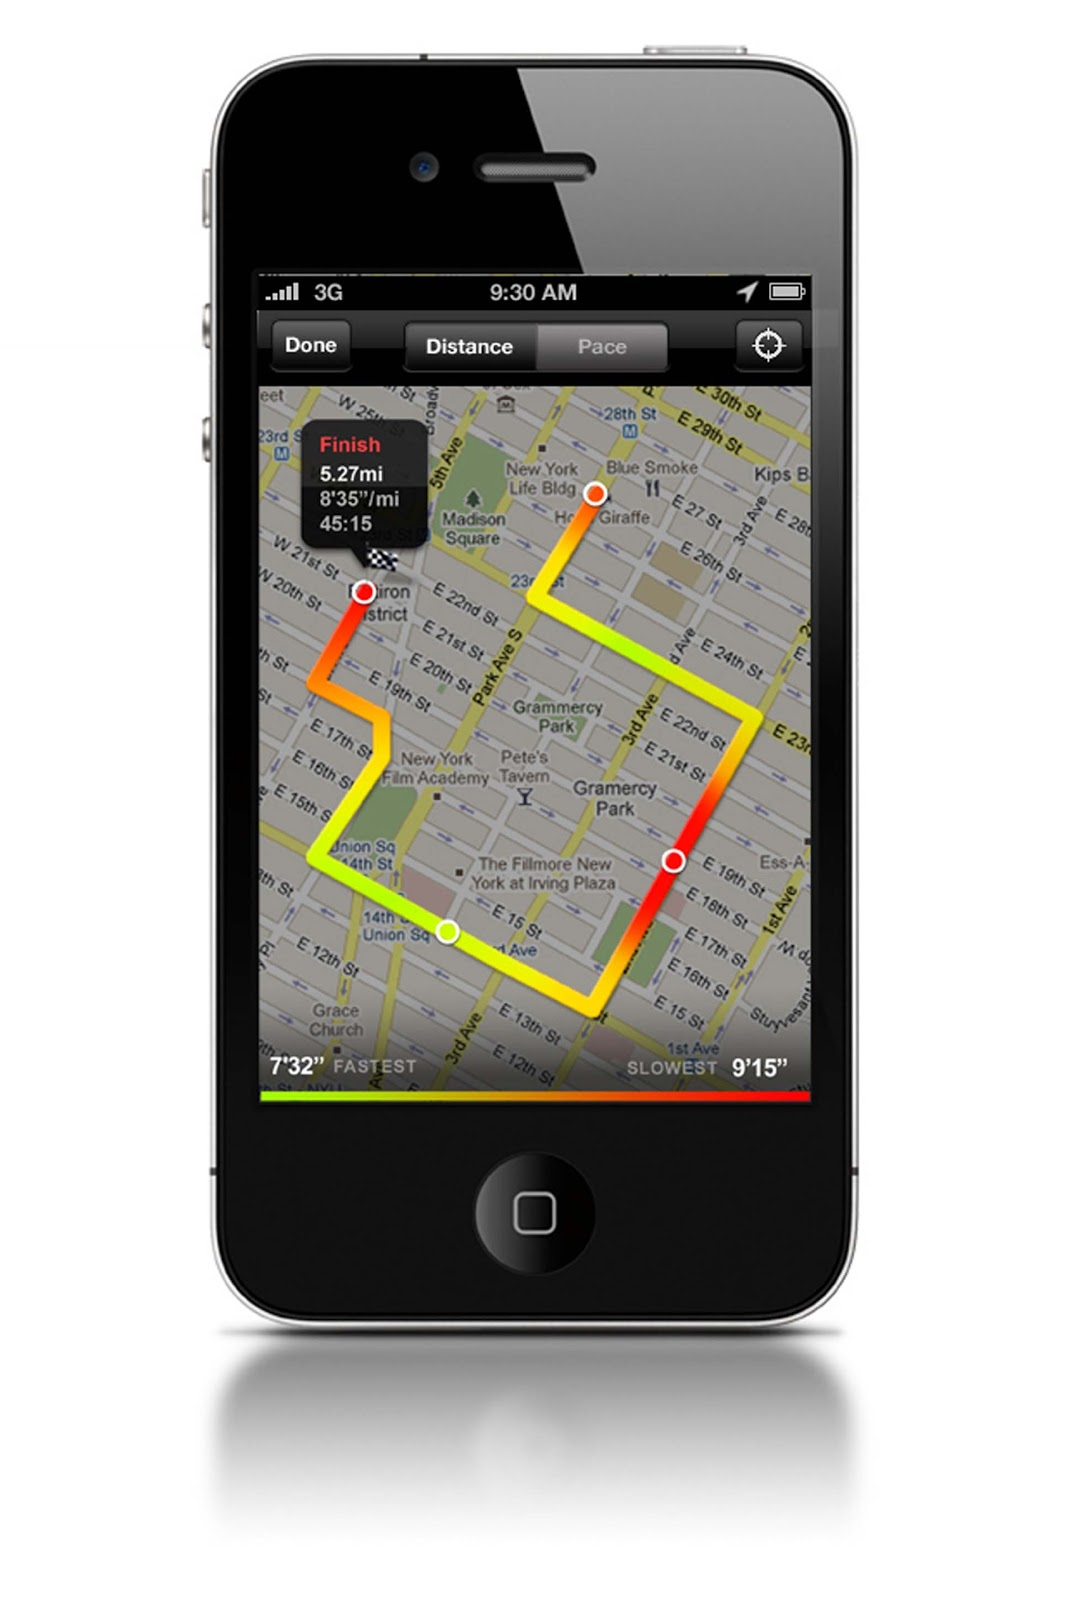 gps app for iphone nike gps app for iphone review fittechnica 14234